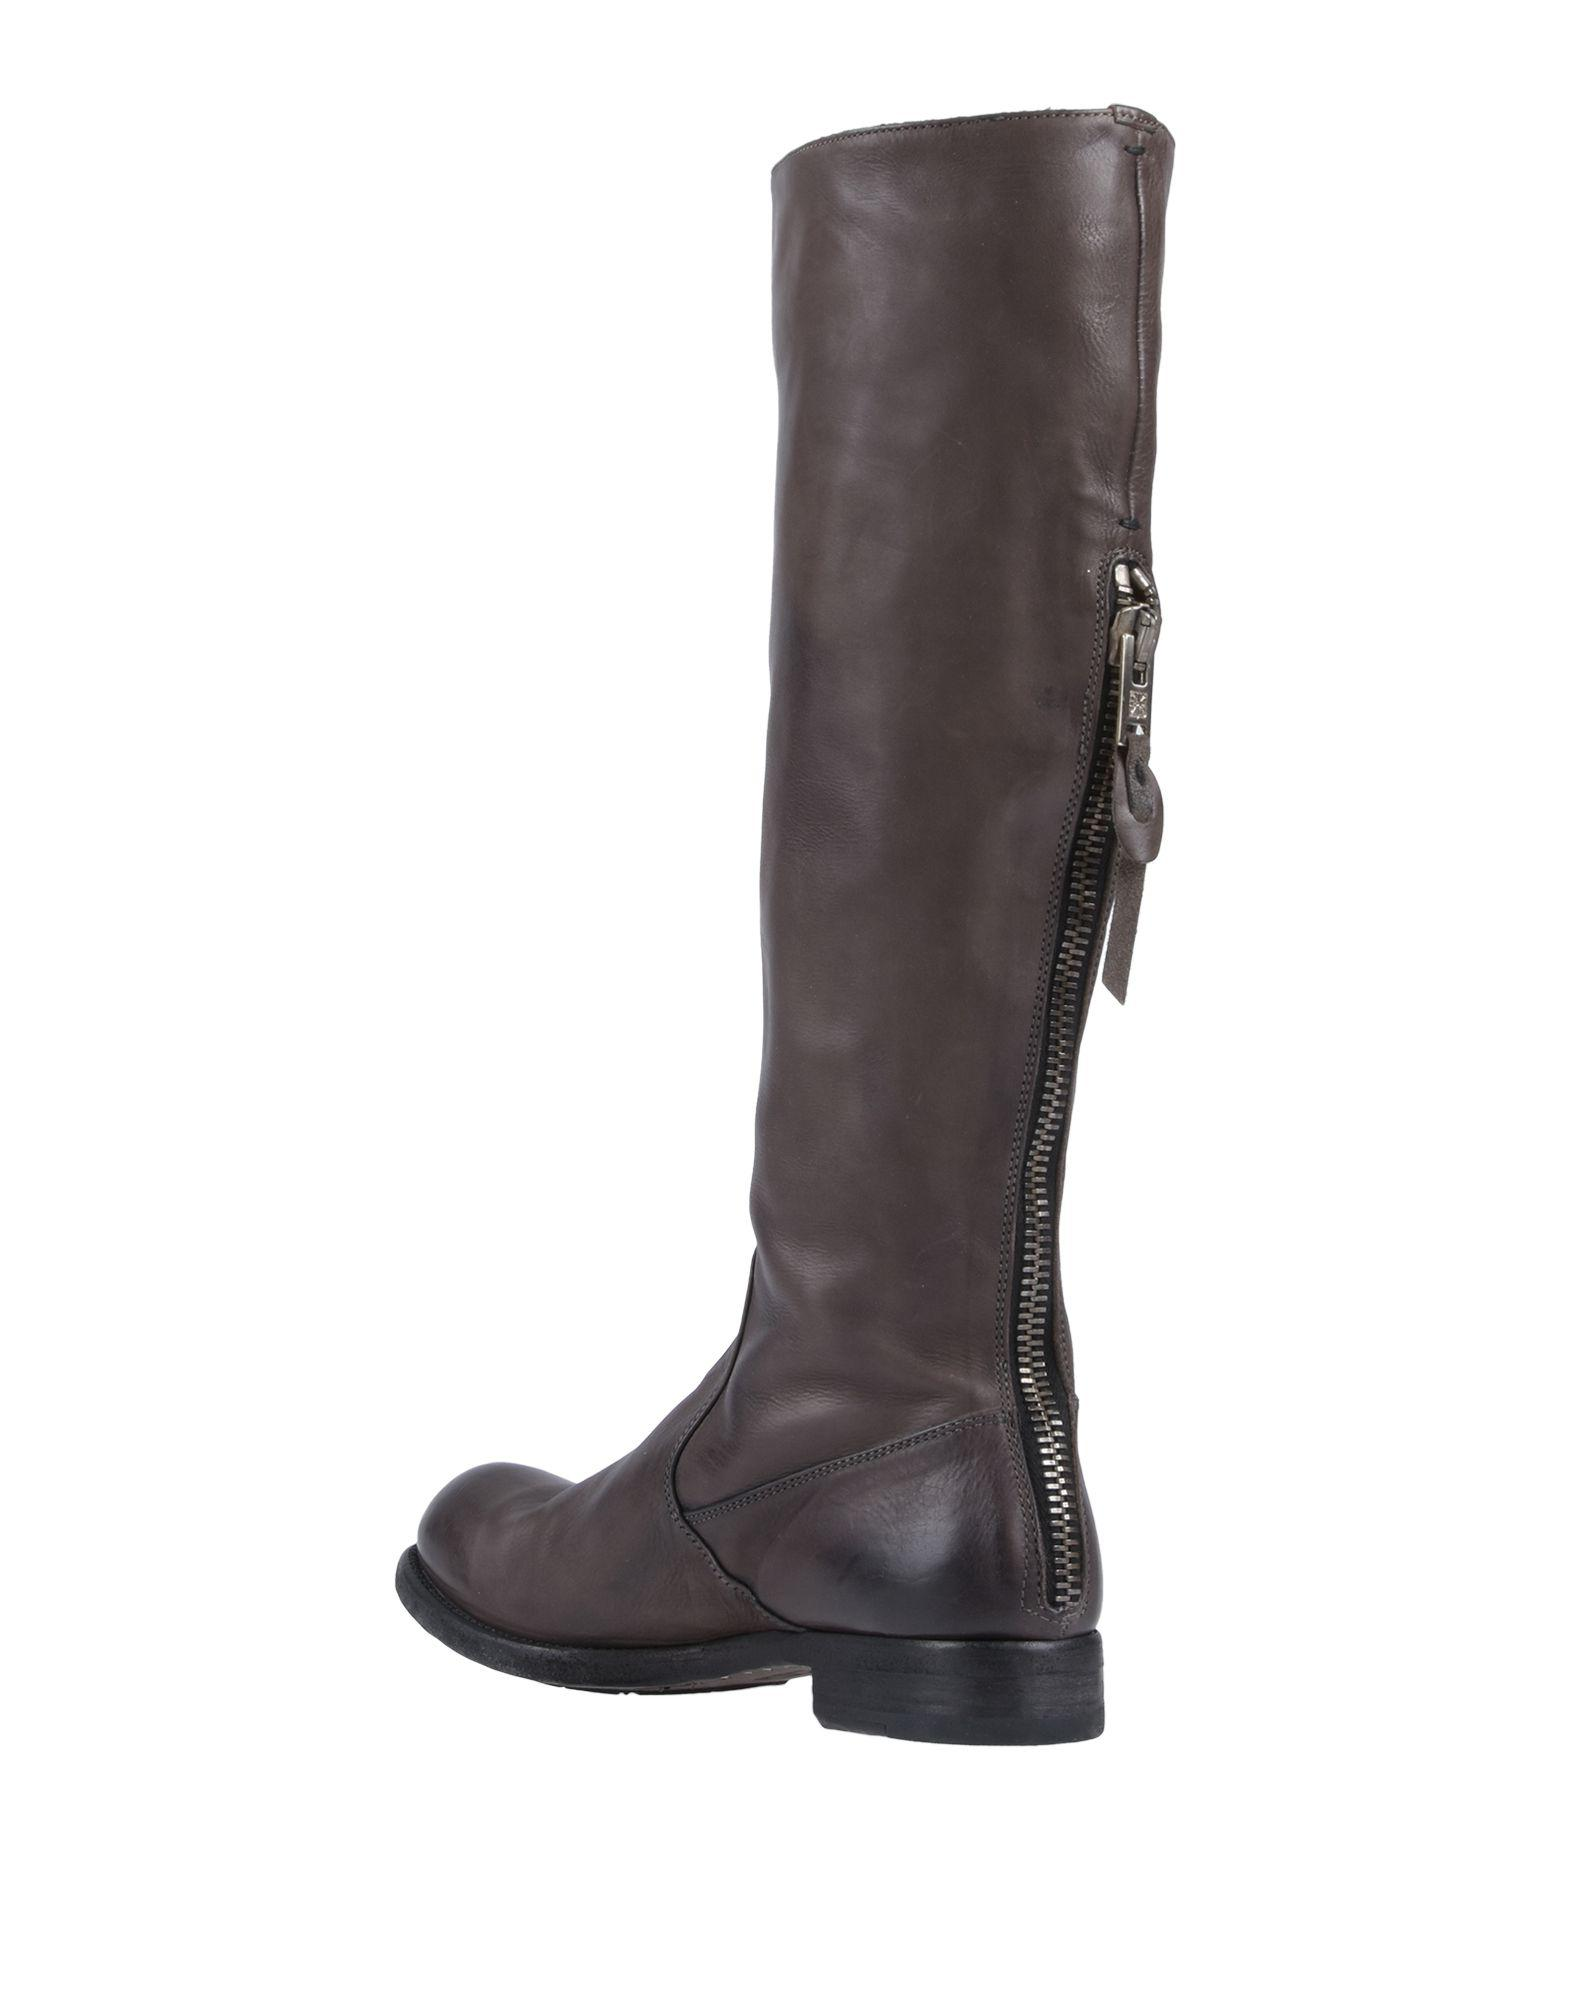 8a57c7ac4400c Lyst - Pantanetti Boots in Brown